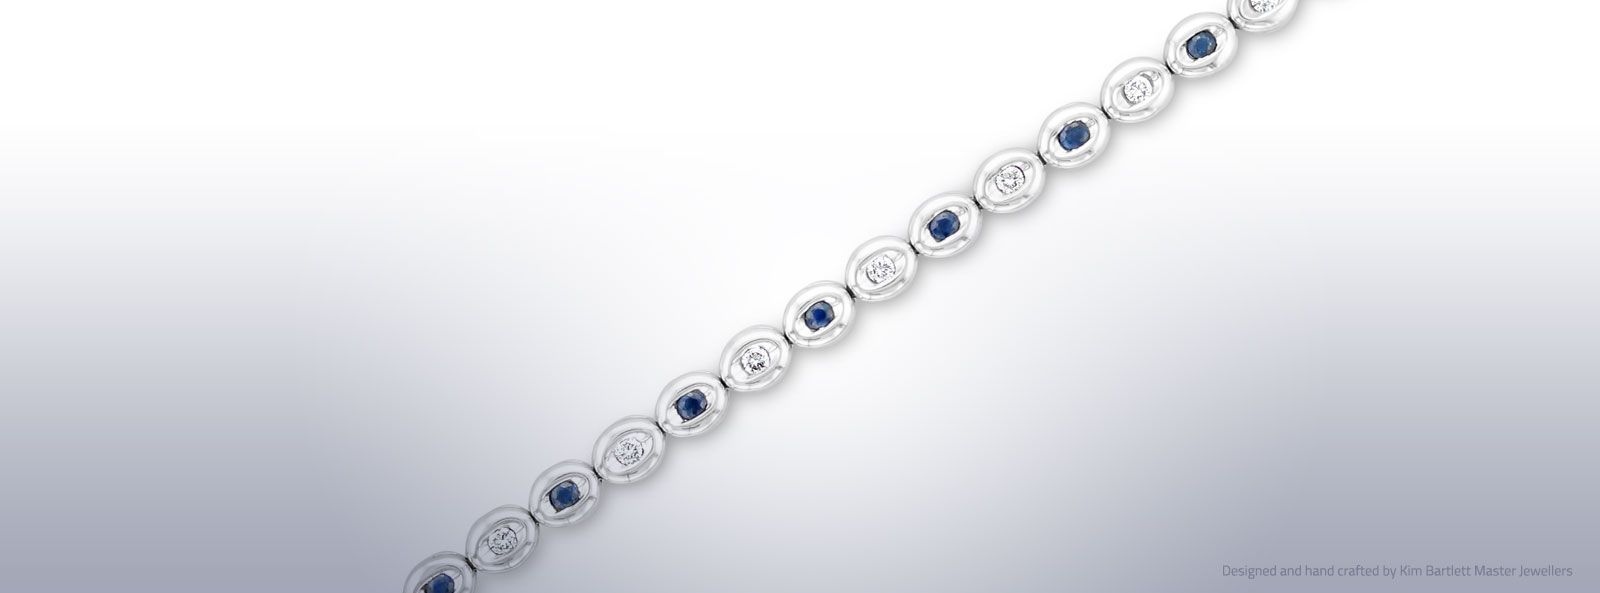 Diamond and Saphire Bracelet